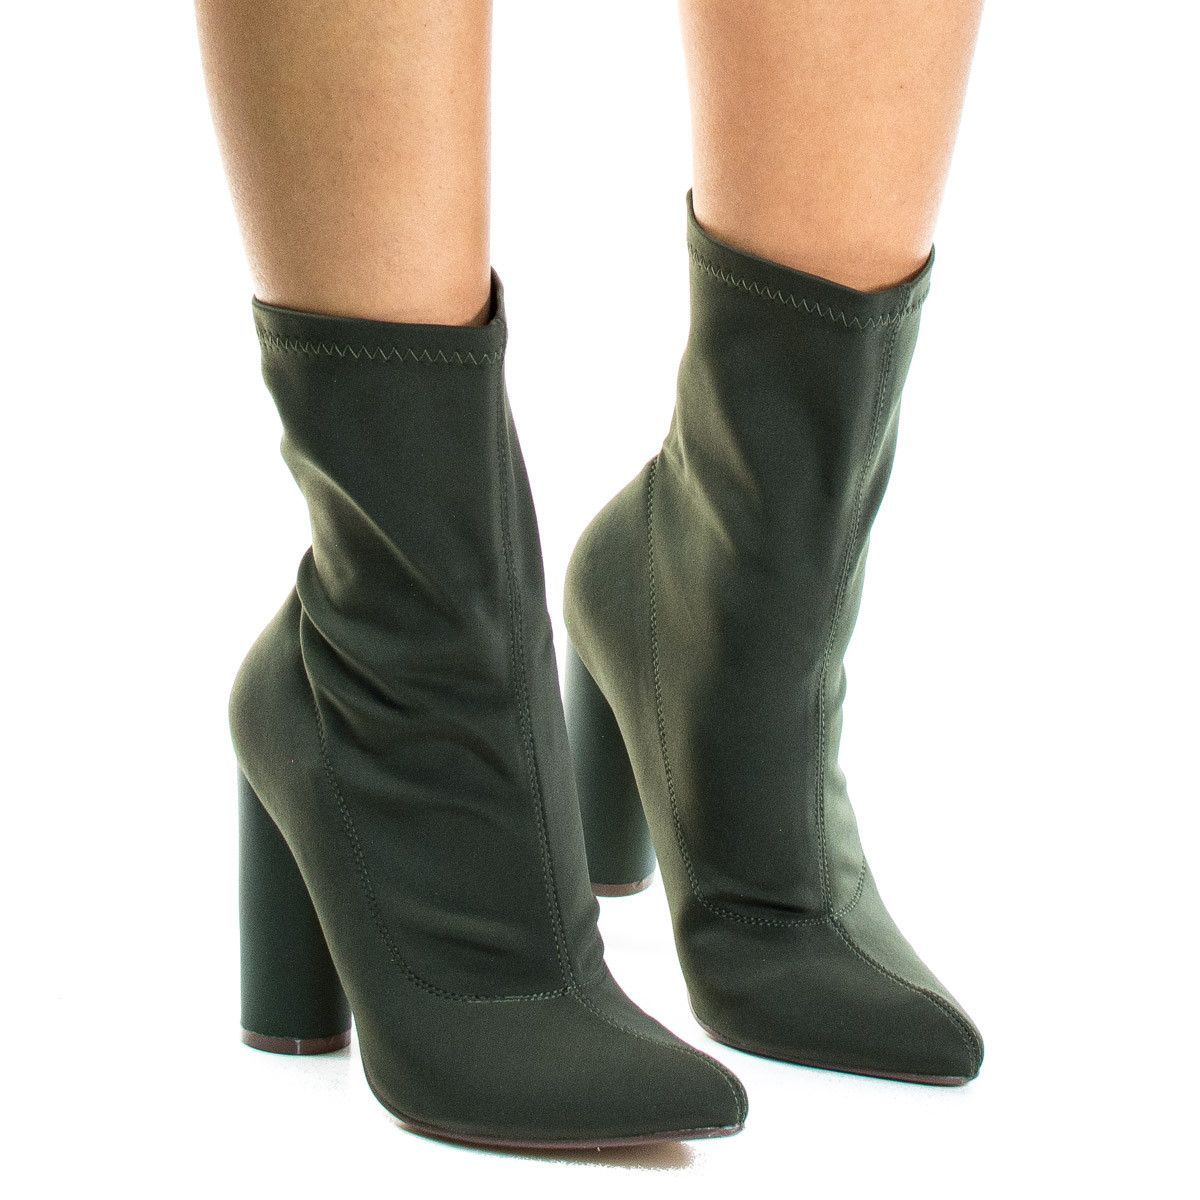 Heels for dark green dress  Elssa Khaki Green By XB Pointed Toe Ankle booties W Stretchy